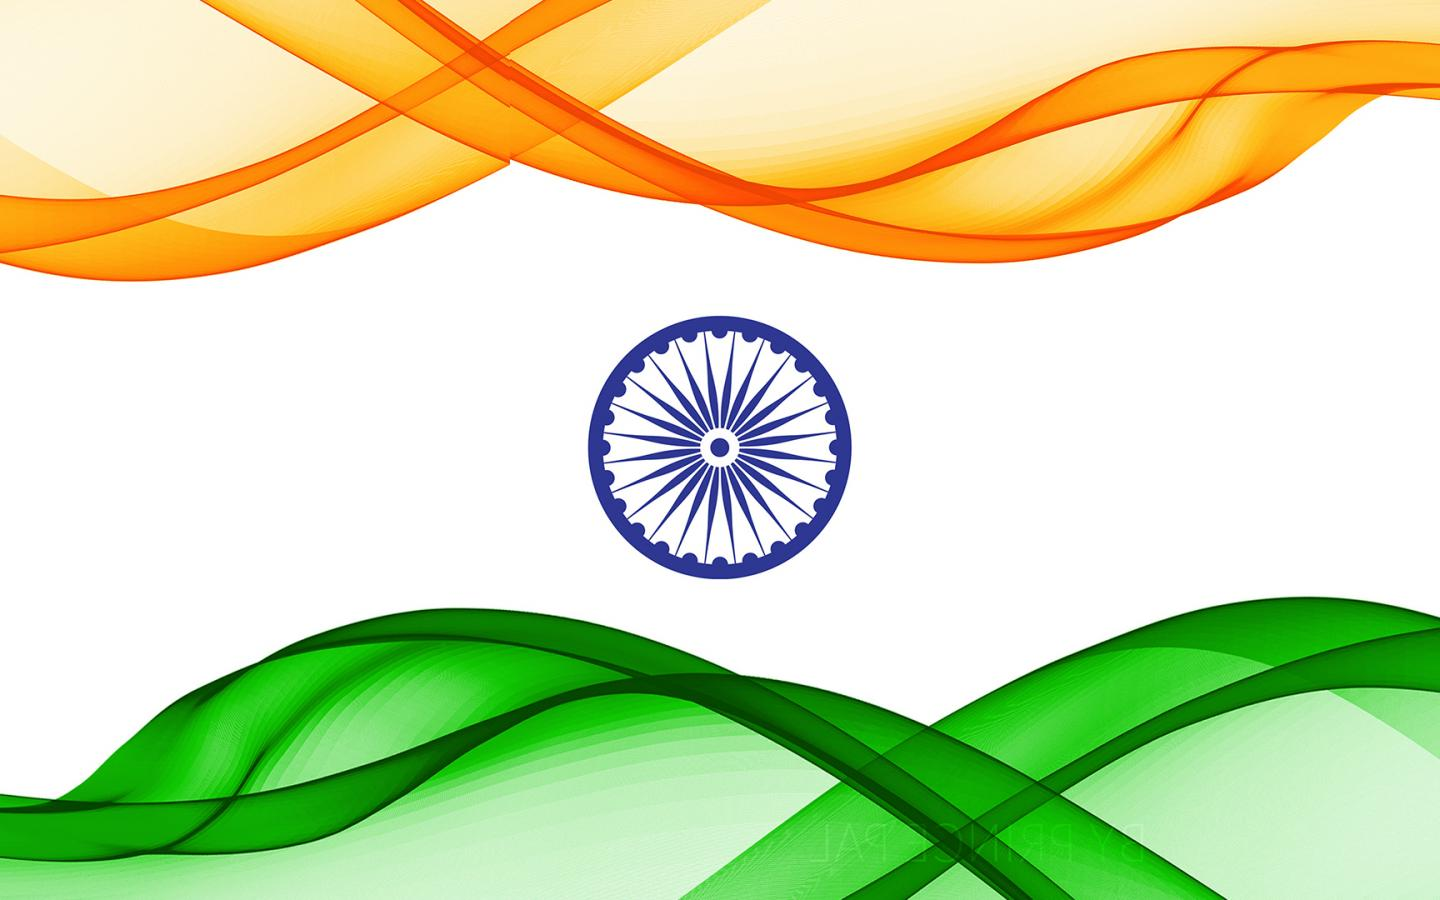 India Flag Hd Art: Indian Flag Art For Independence Day Celebration